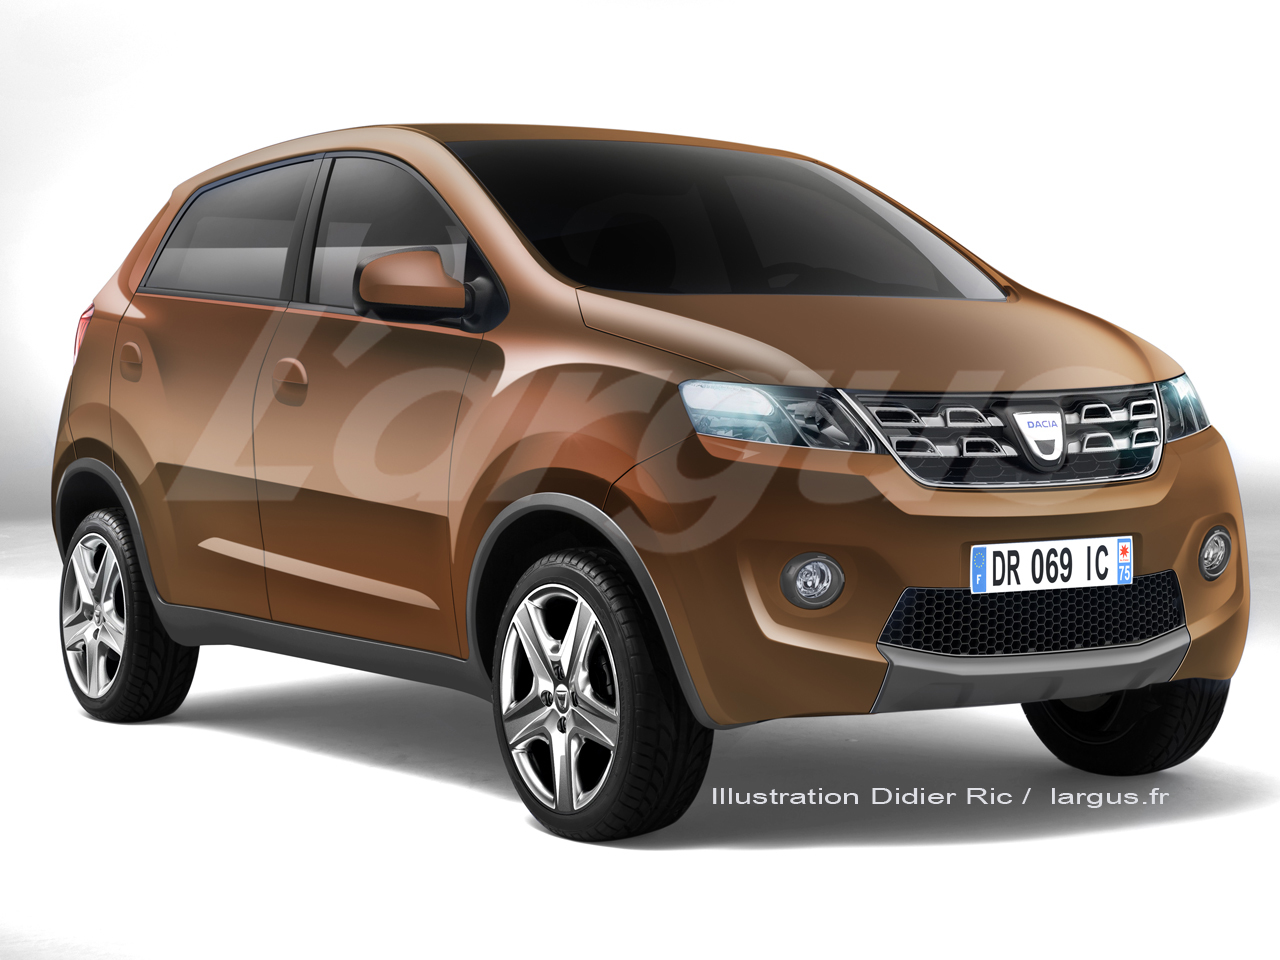 dacia kwid voici le nom de la future citadine dacia 5000 euros l 39 argus. Black Bedroom Furniture Sets. Home Design Ideas